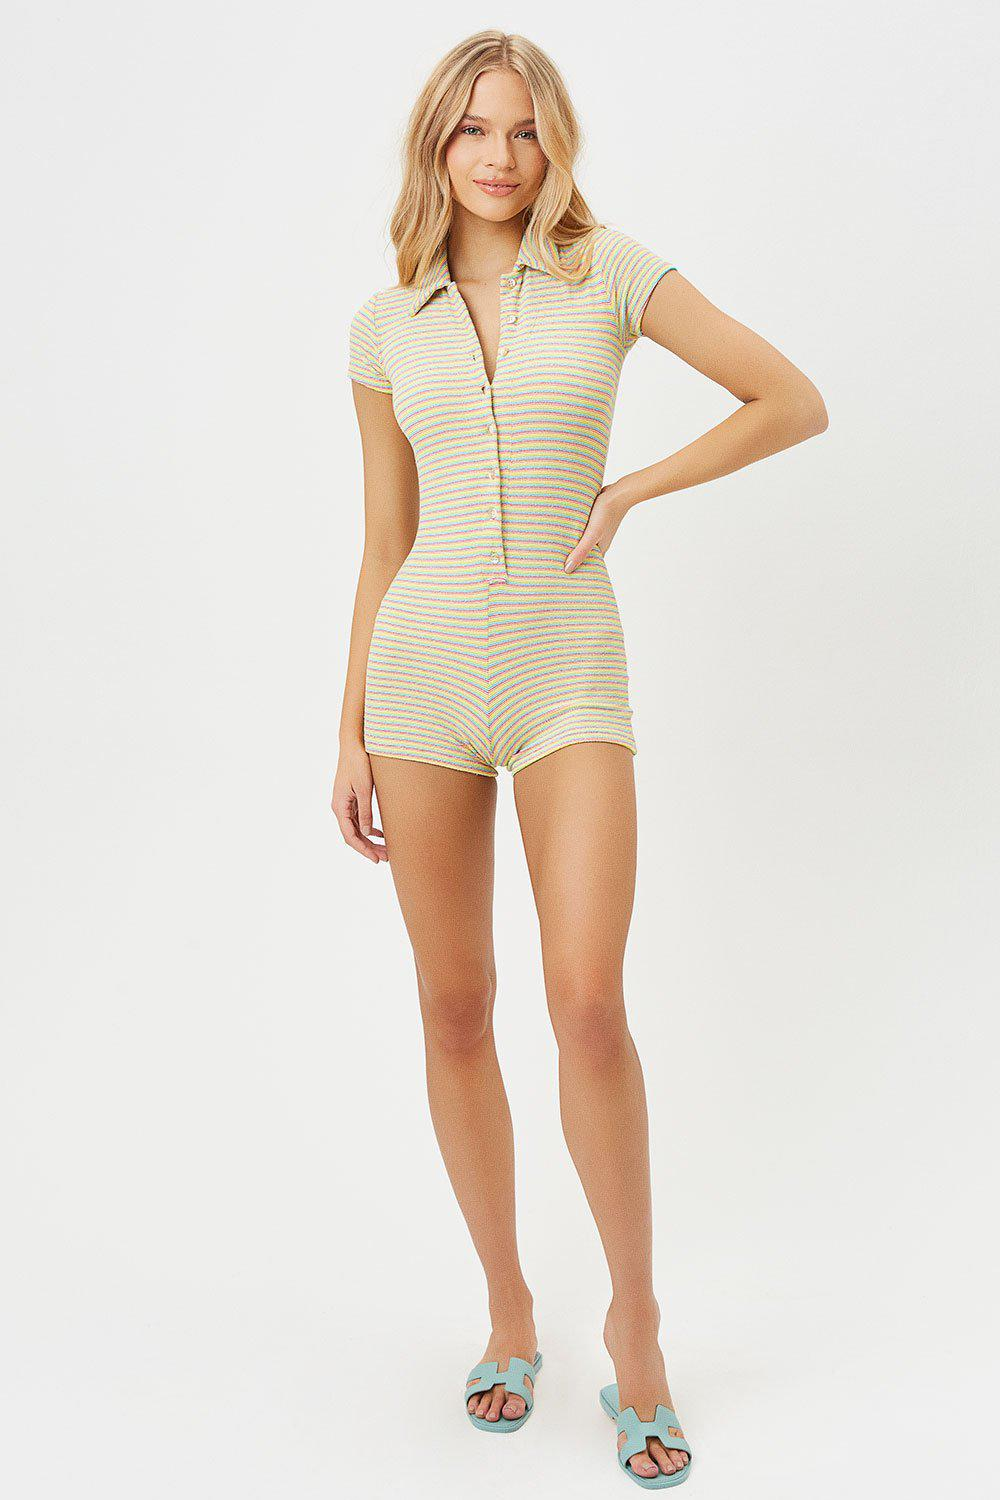 Rose Terry Romper - Lovers Stripe Terry